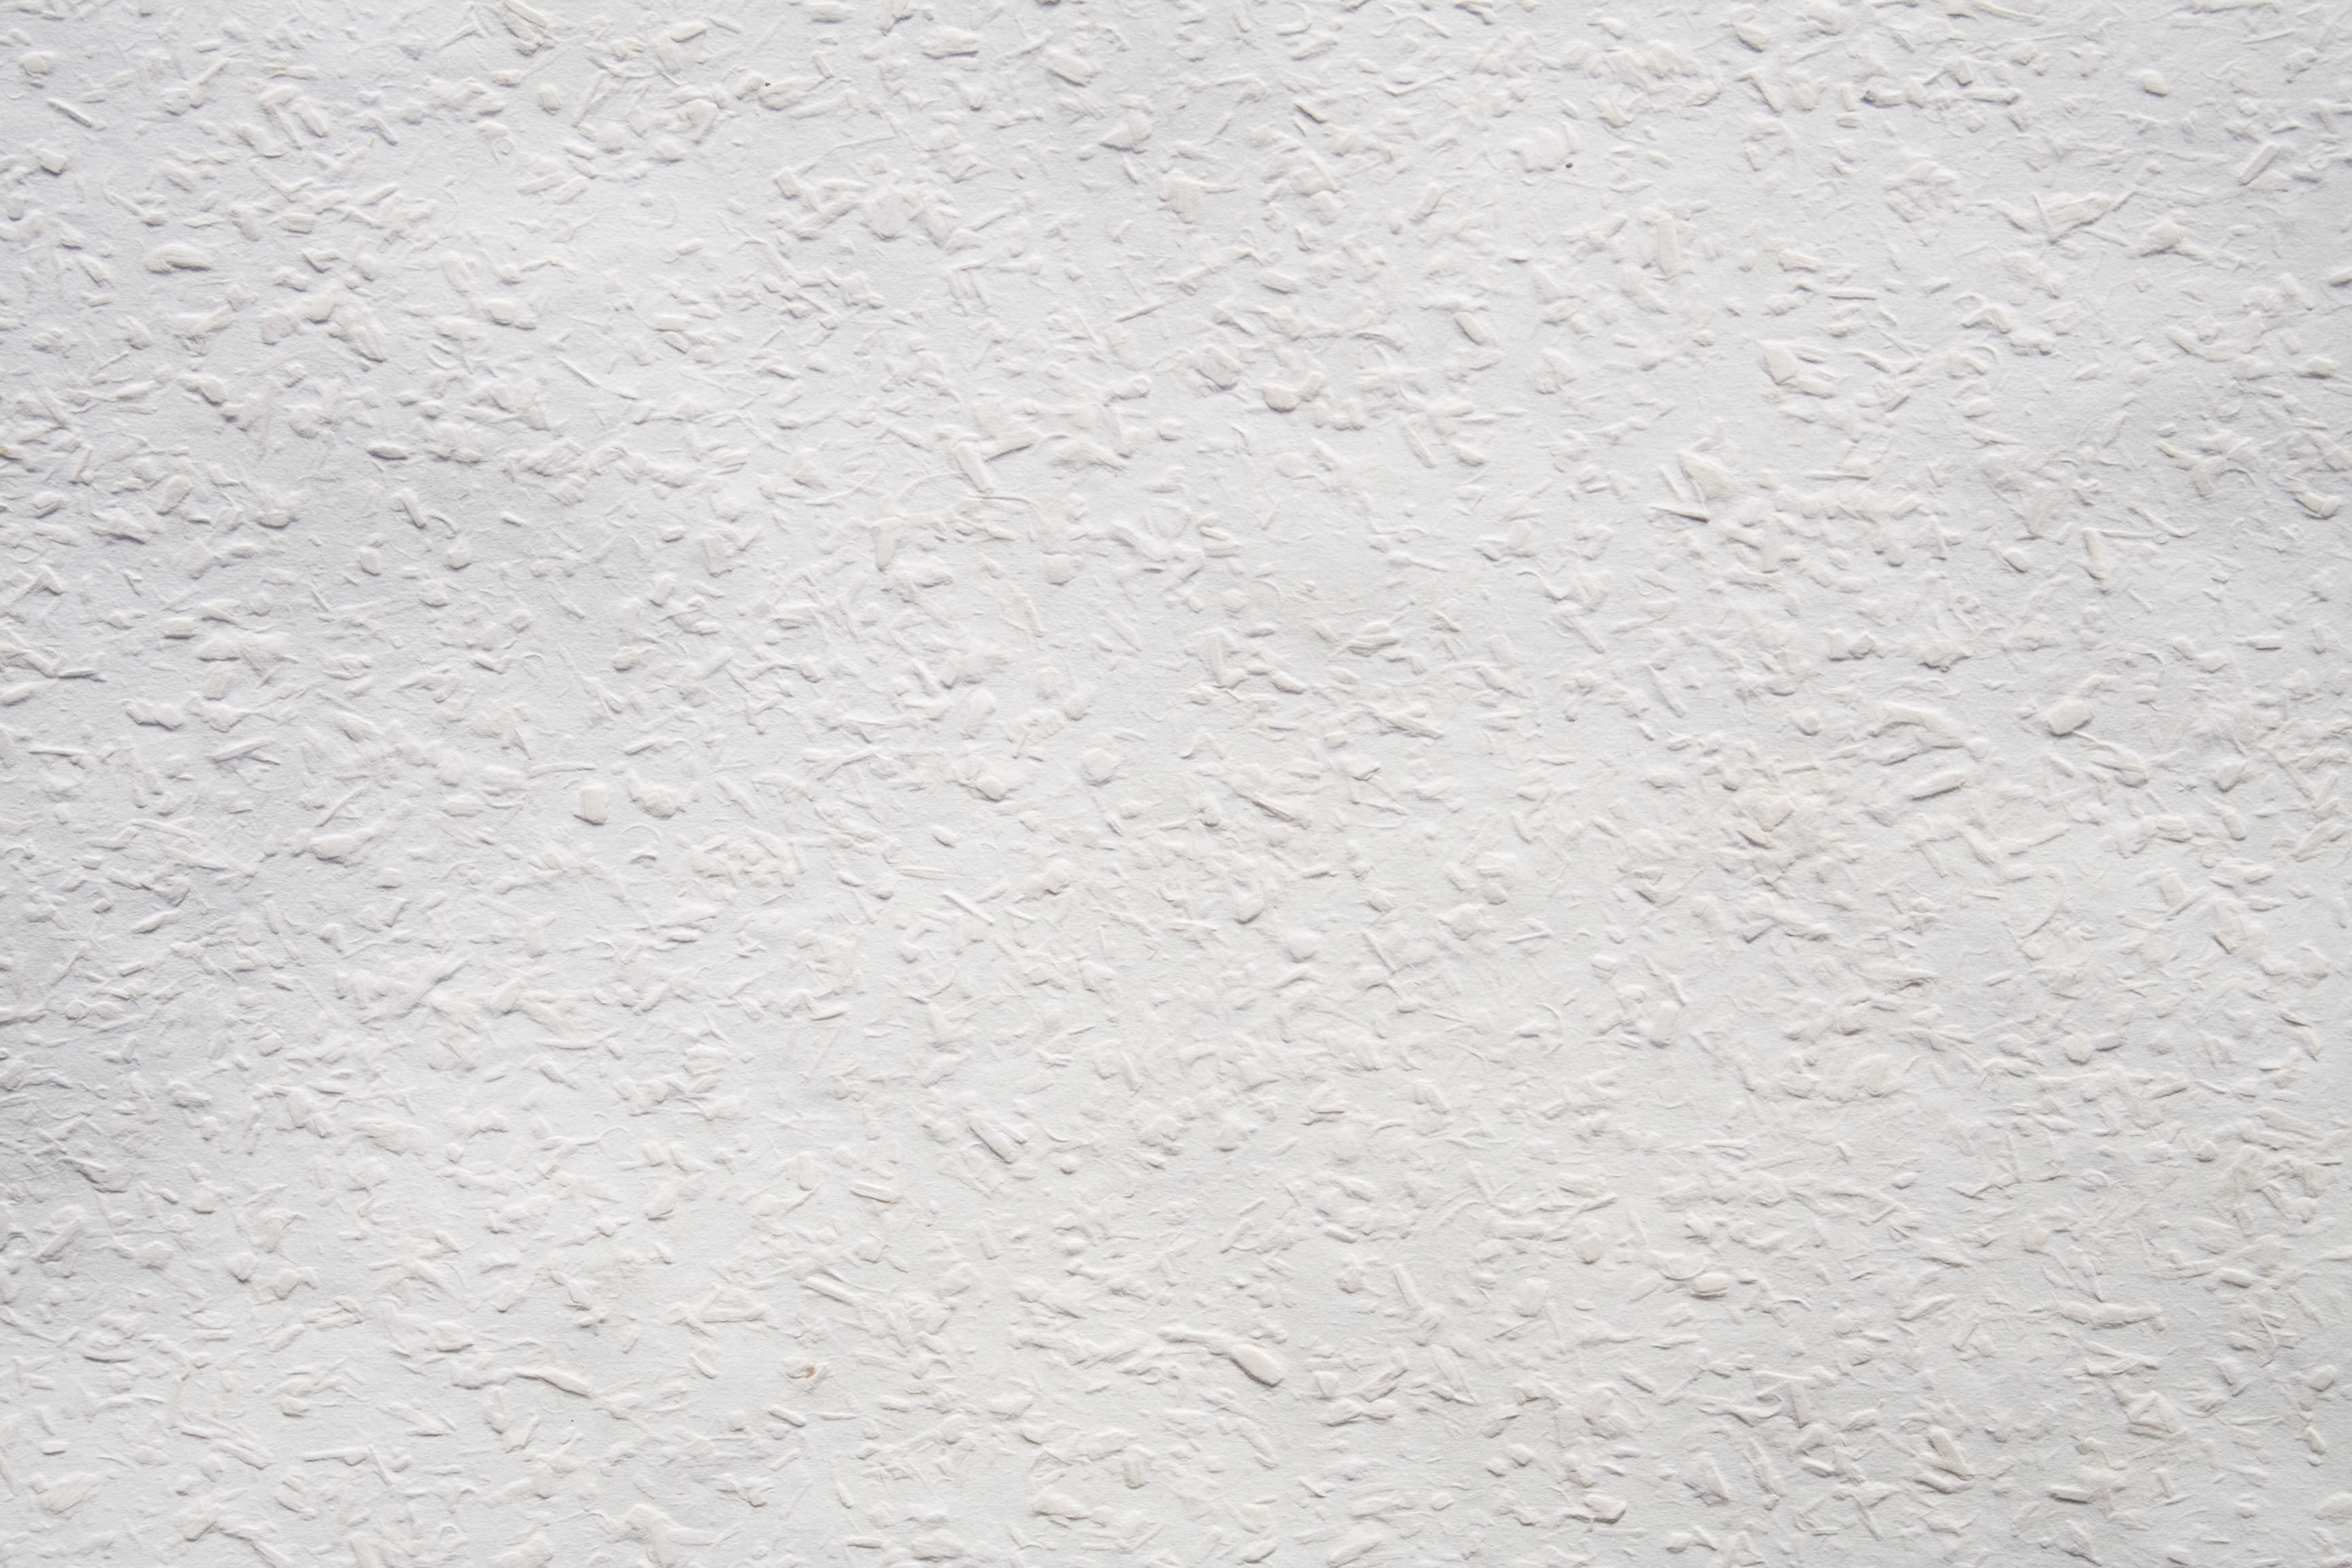 70 white backgrounds wallpapers images pictures for Free white texture